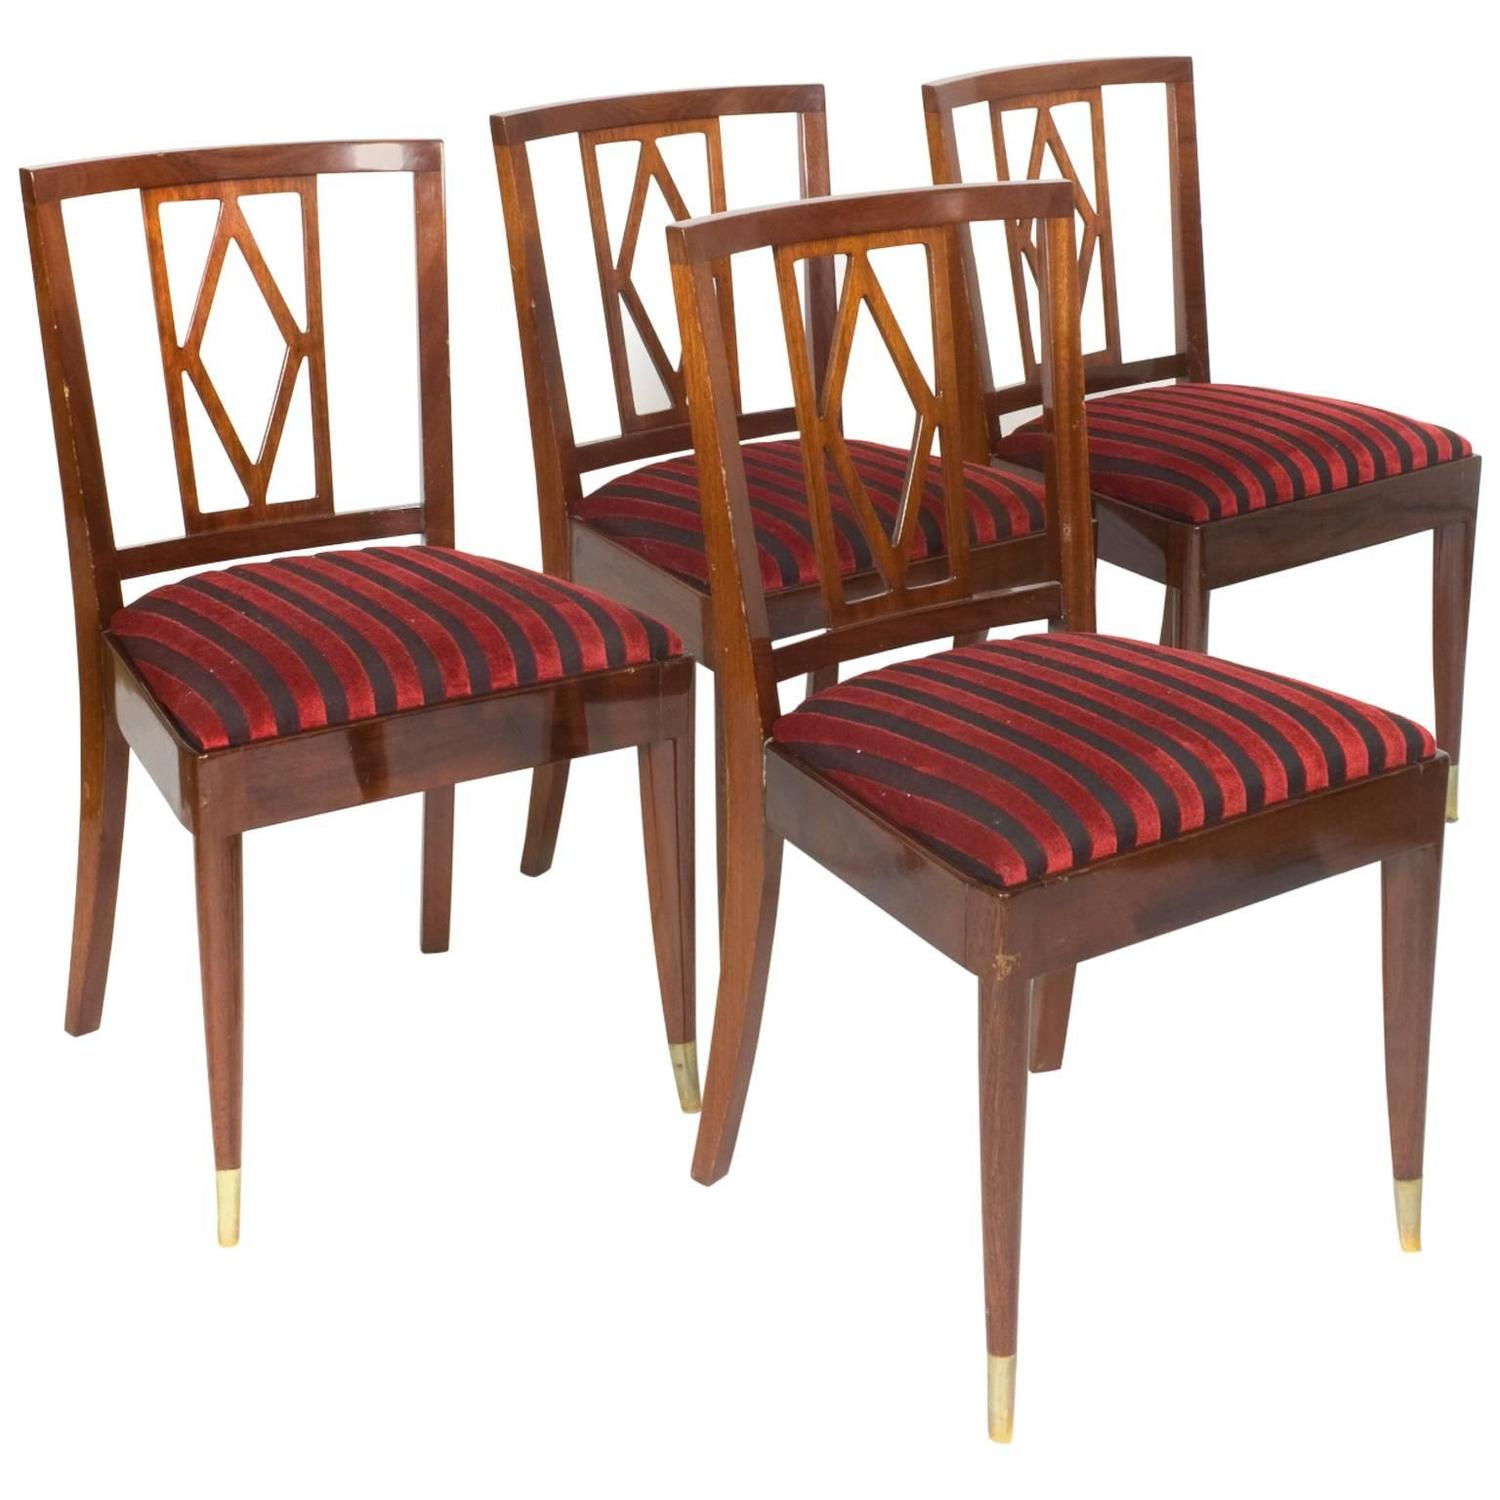 Four mahogany dining room chairs by josef de coene 1950s for Dining room sets 4 chairs